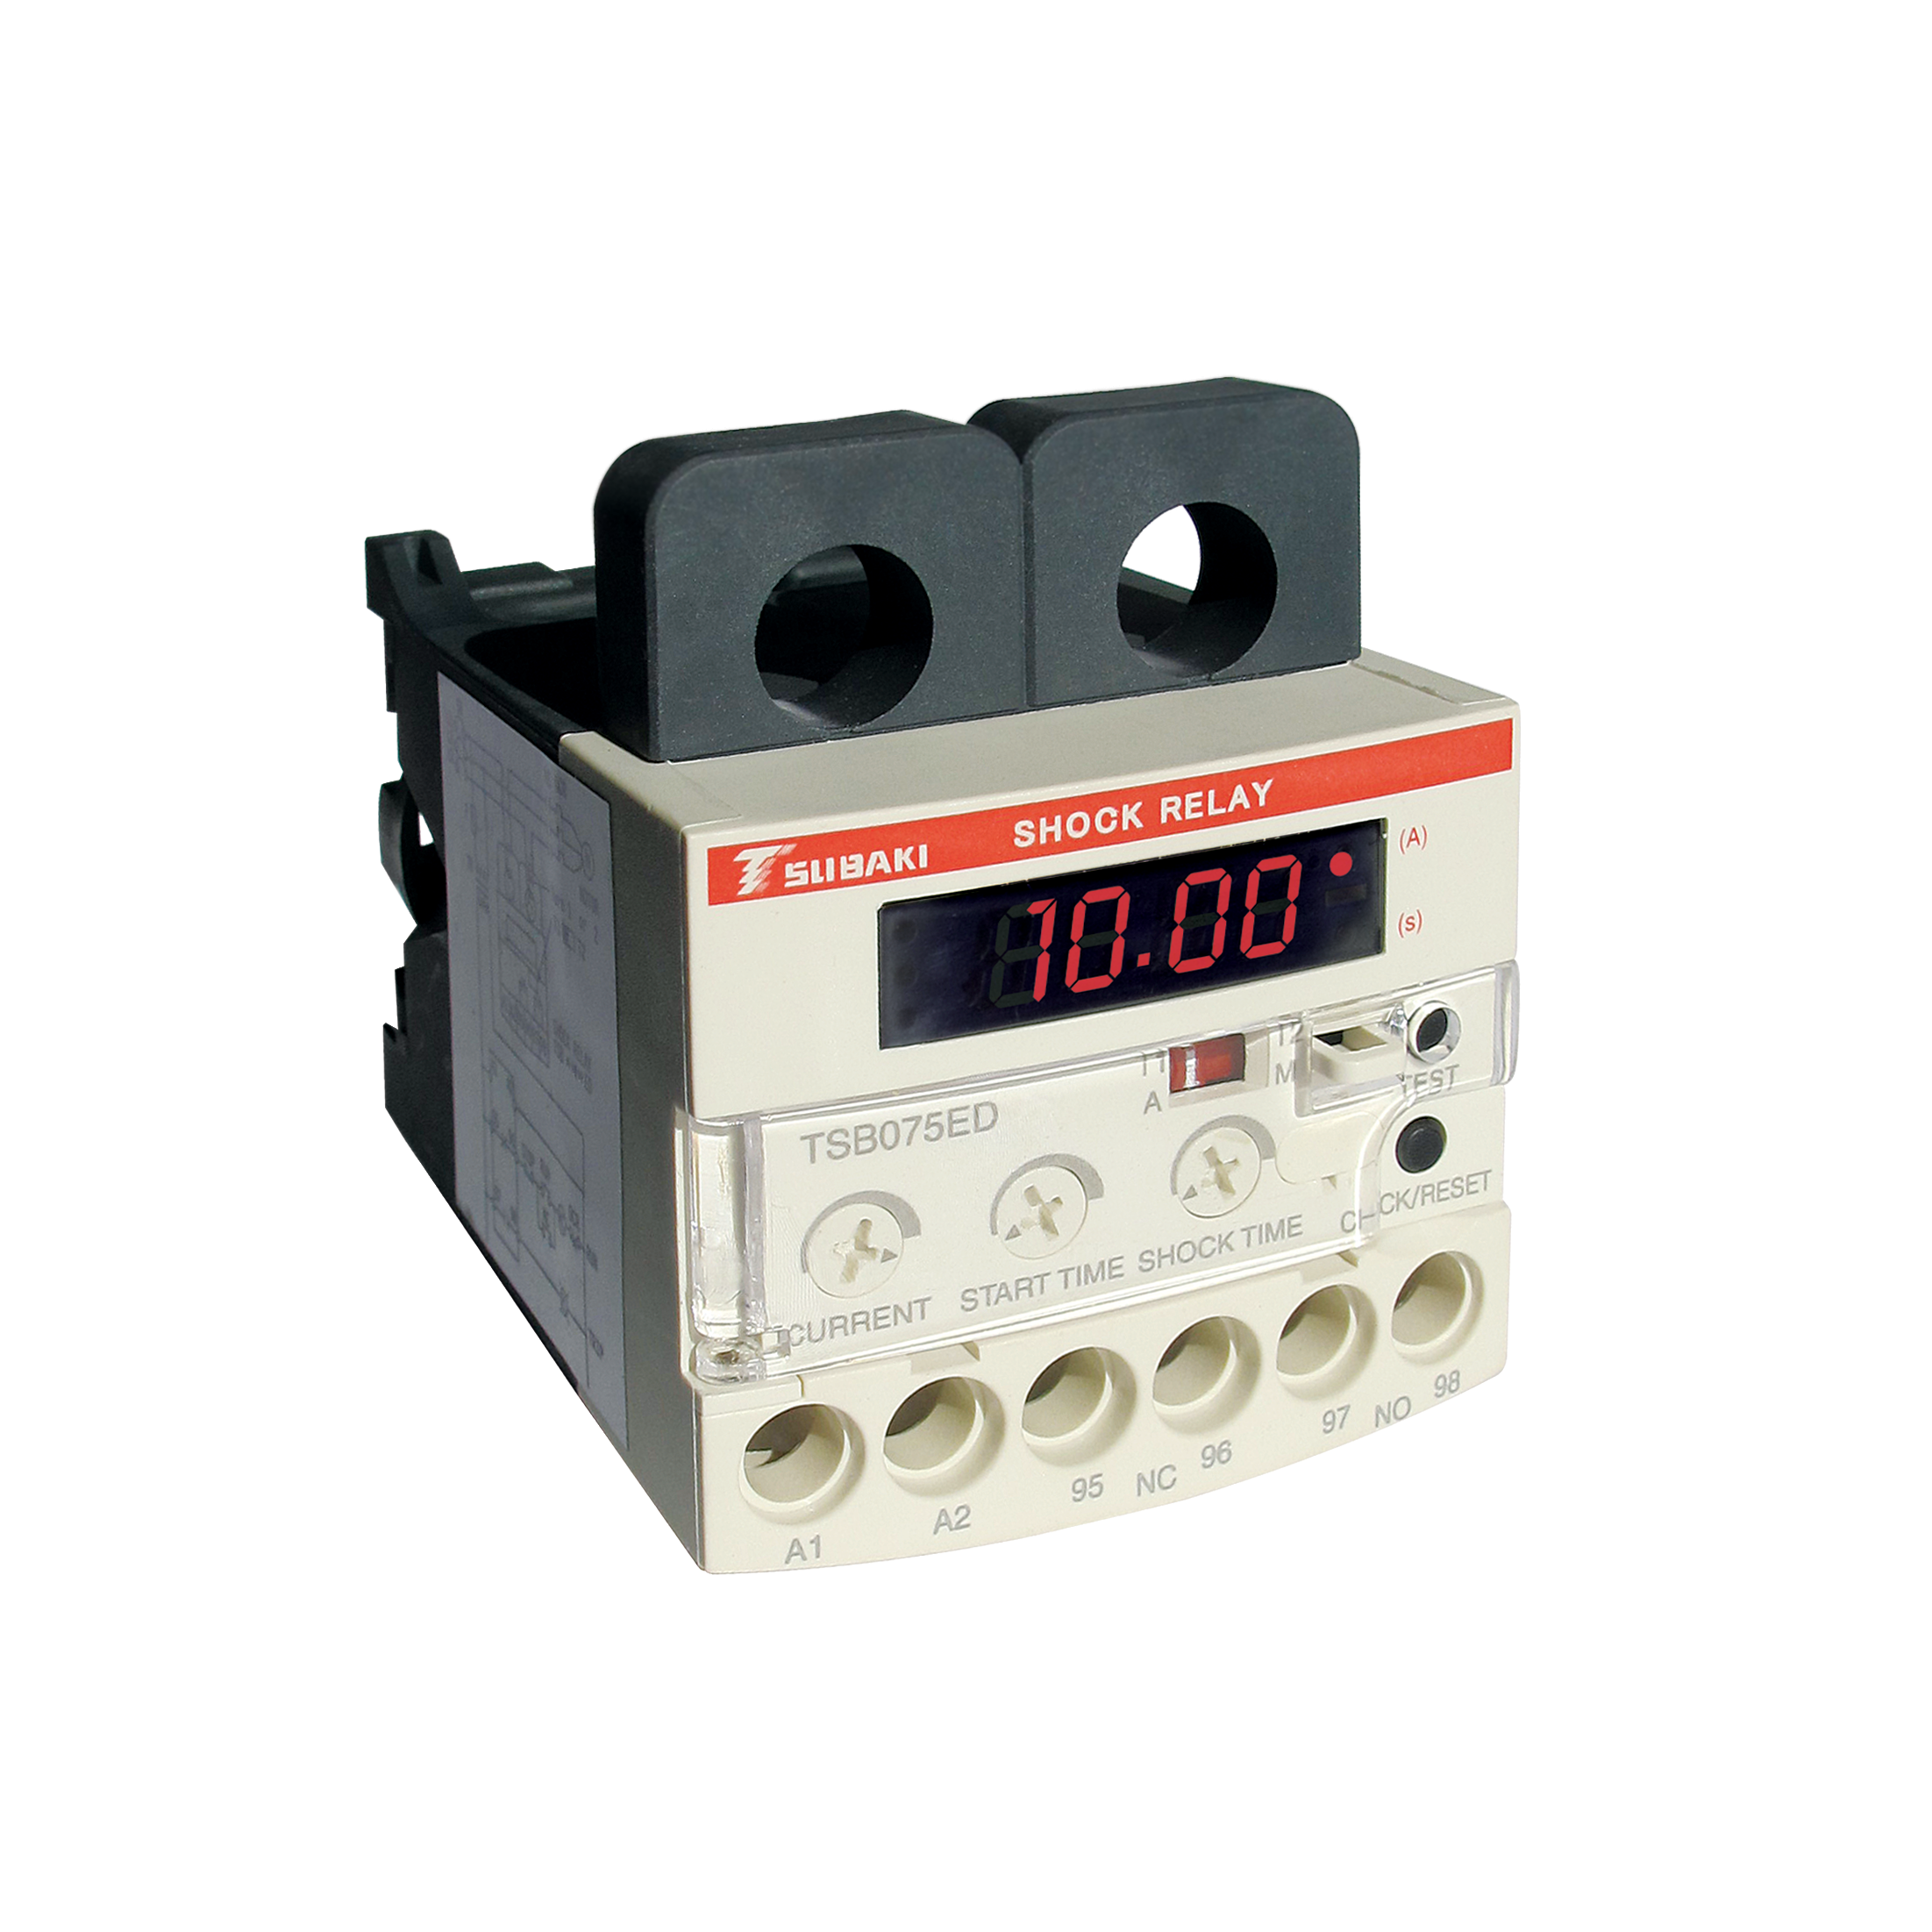 Types Of Magnets Thomasnet >> Types Of Relays A Thomas Buying Guide